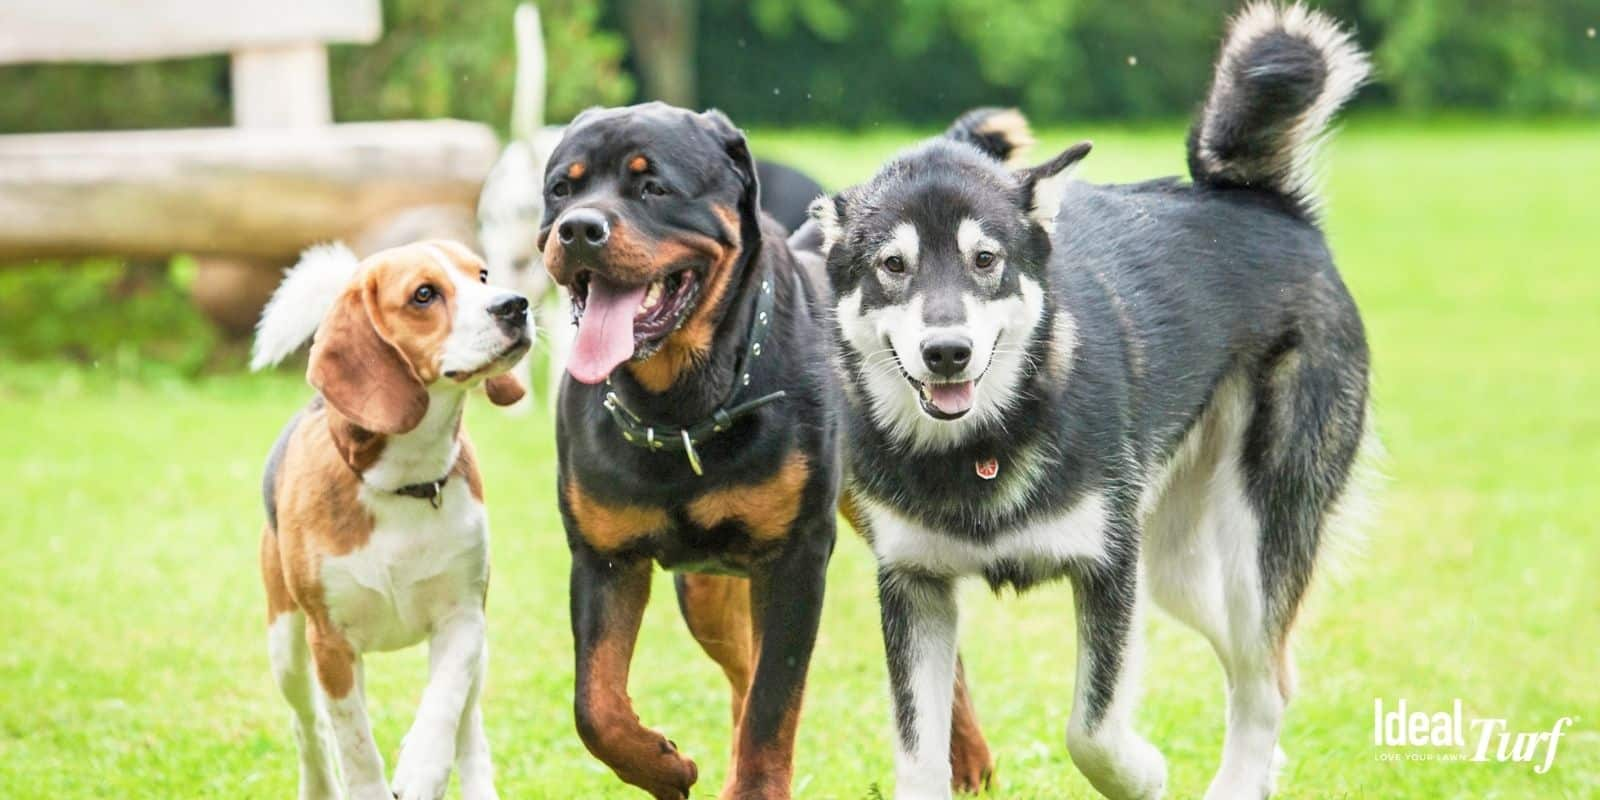 Three dogs walking together on artificial grass